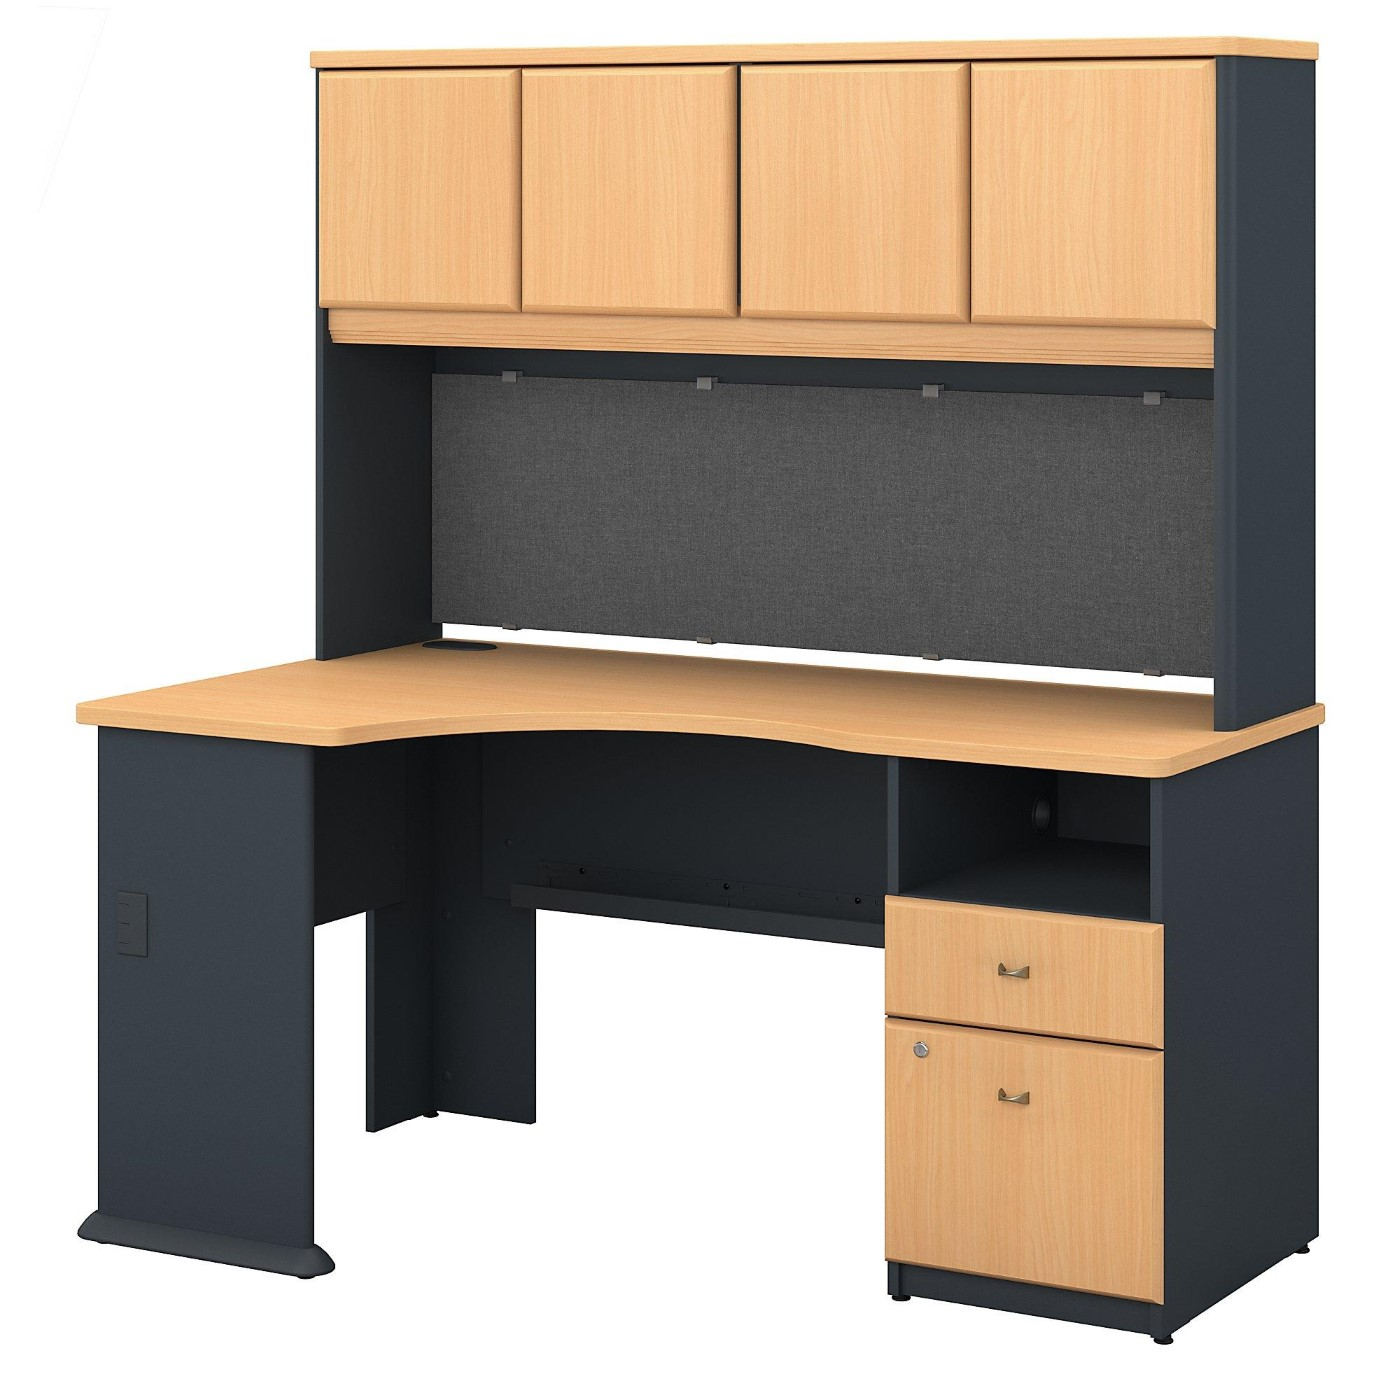 <font color=#c60><b>BUSH BUSINESS FURNITURE SERIES A 60W CORNER DESK WITH HUTCH AND 2 DRAWER PEDESTAL. FREE SHIPPING</font></b>